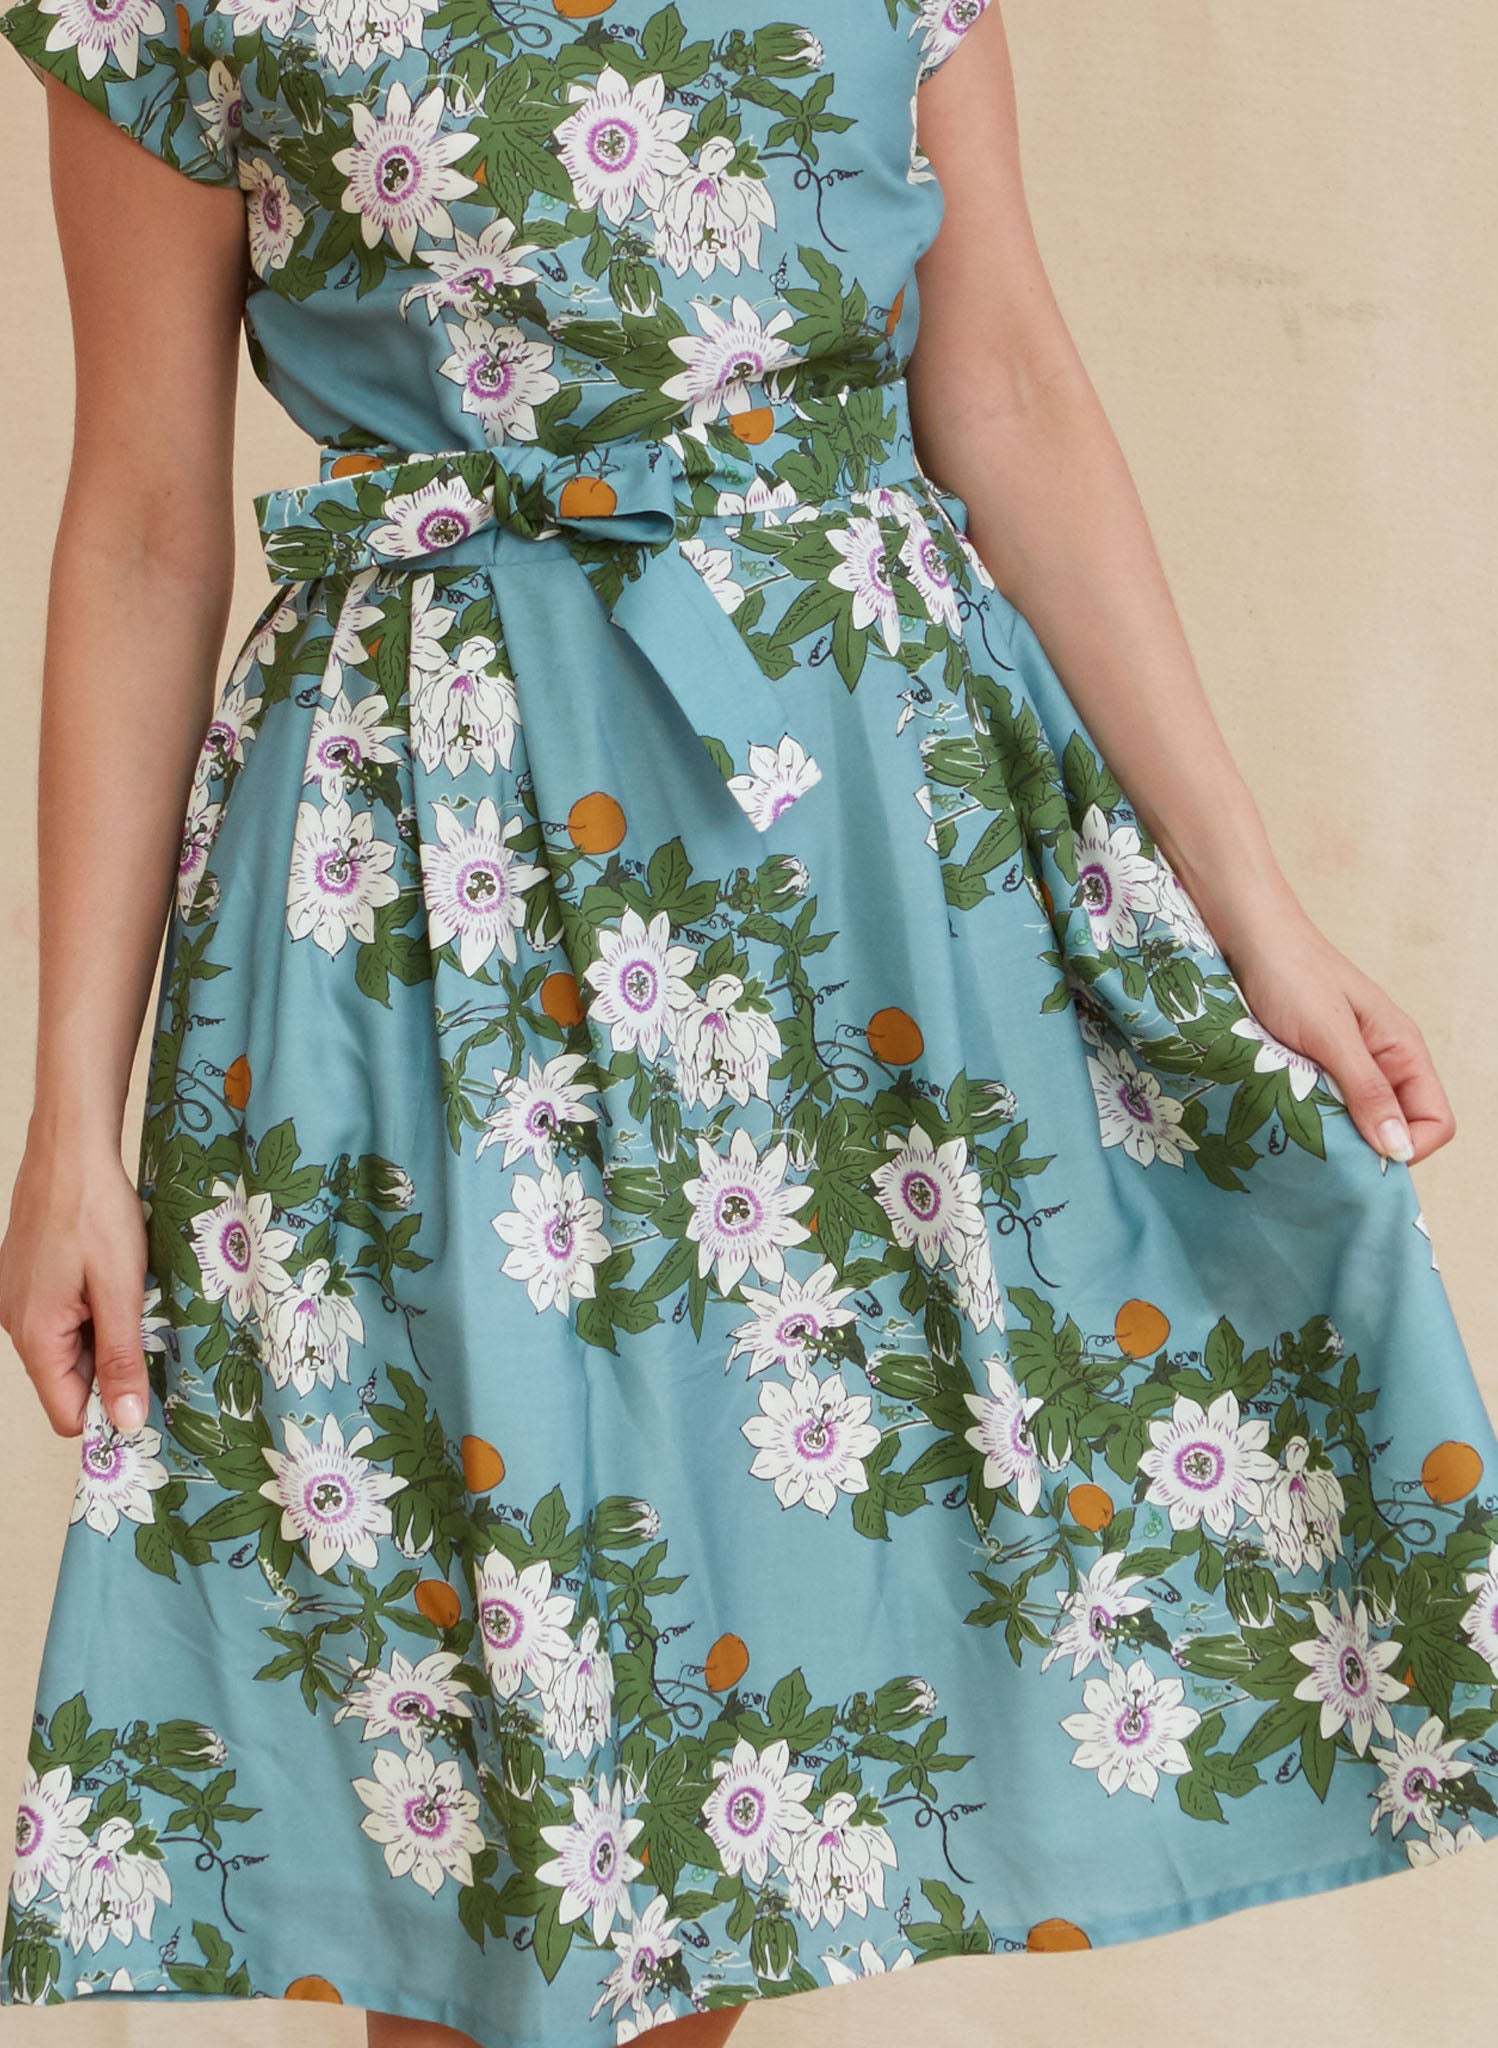 Beatrice Cap - Tencel Teal Passionflower Dress